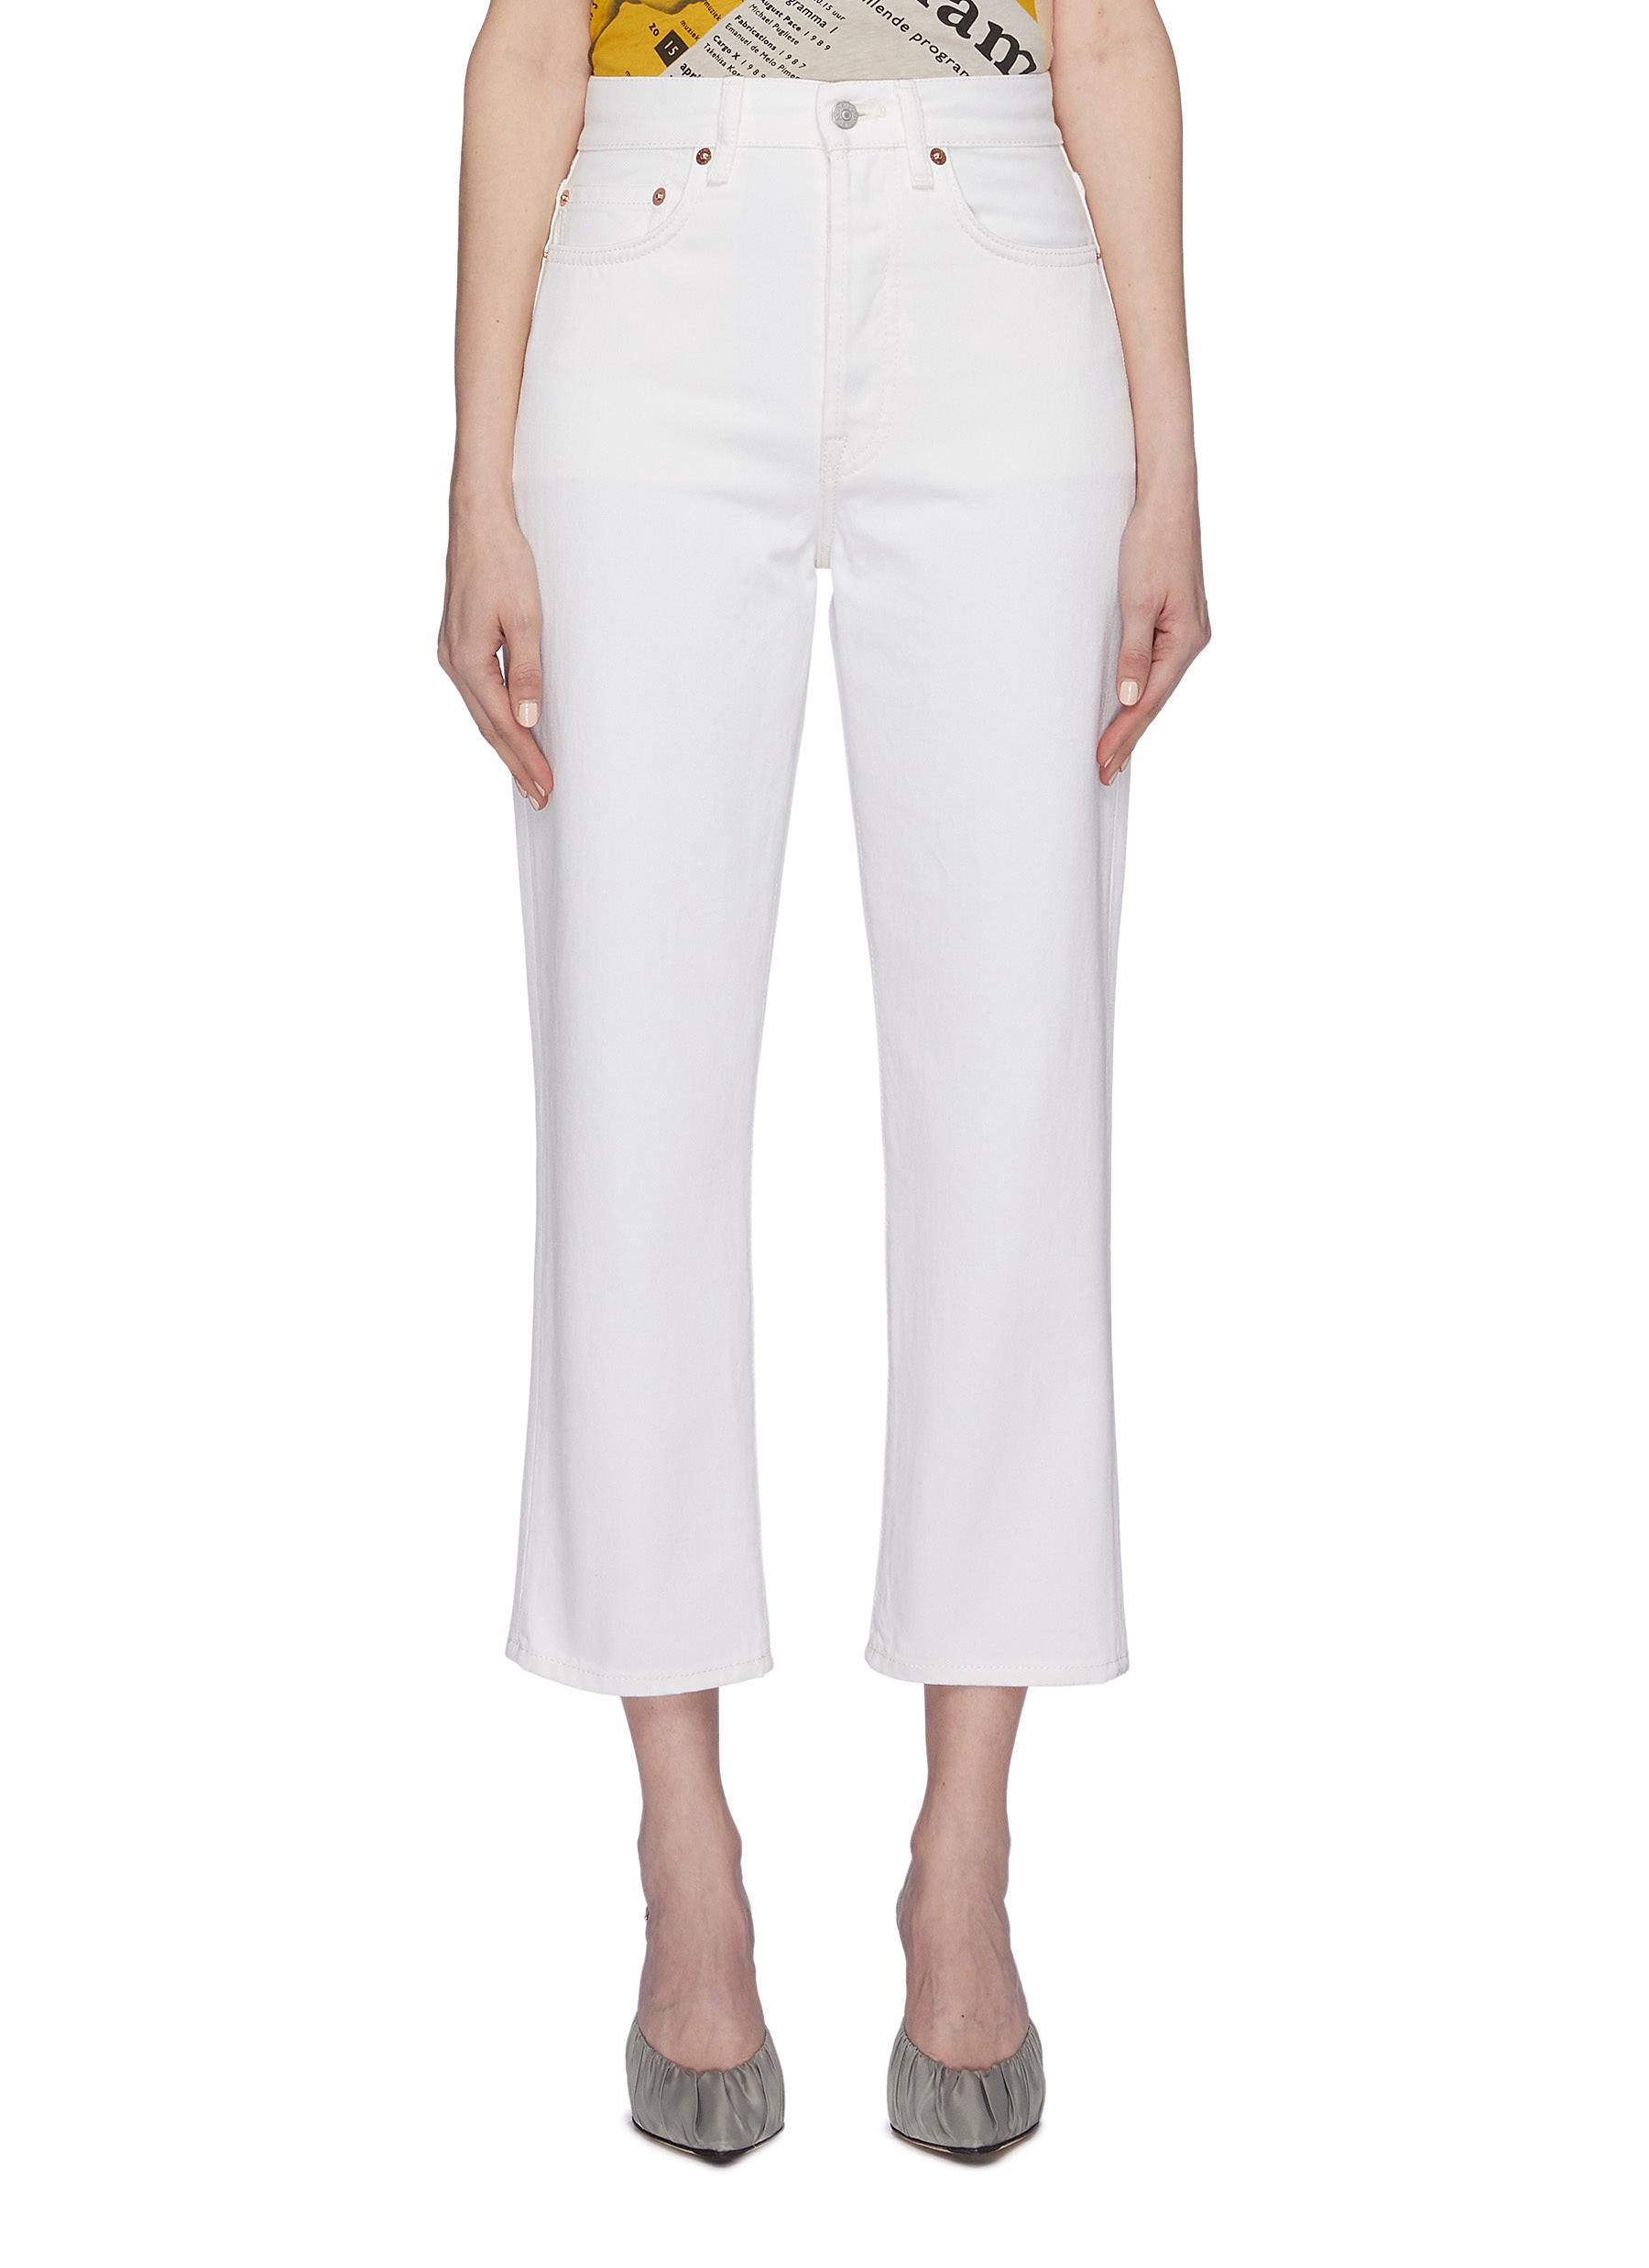 Cropped jeans by Acne Studios